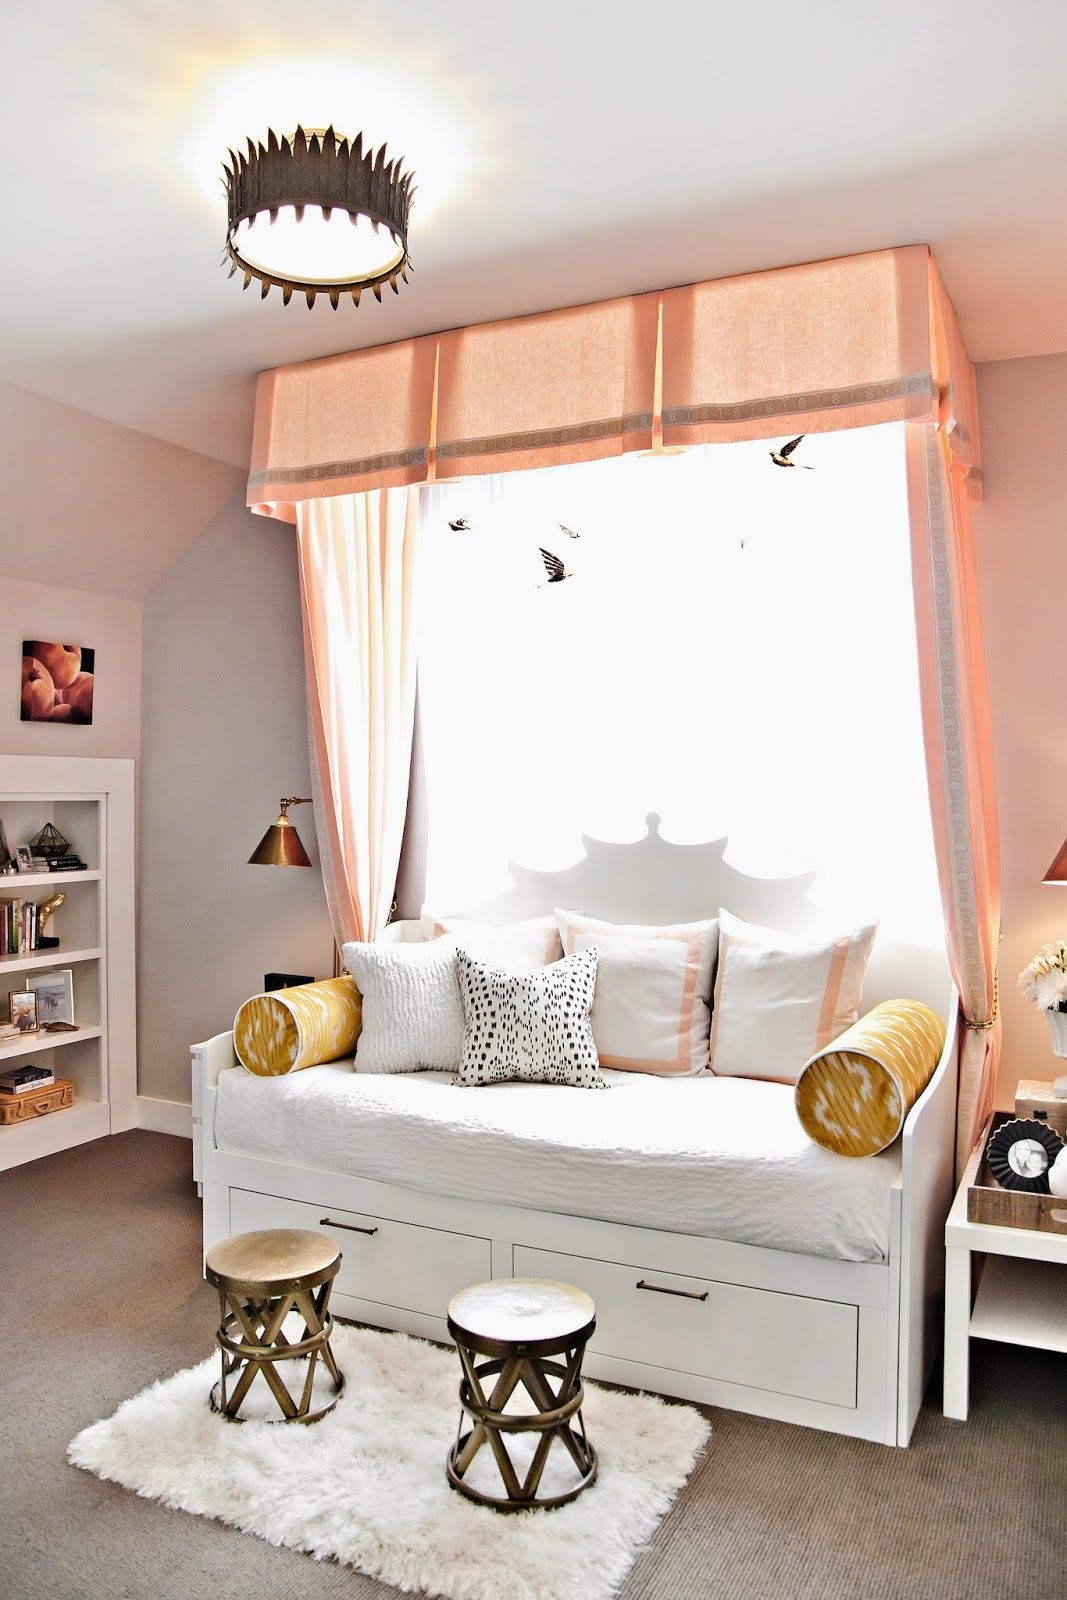 bedroom in peach metallic love the style look of that canopy with the daybed daybed ideaskids daybedteenage